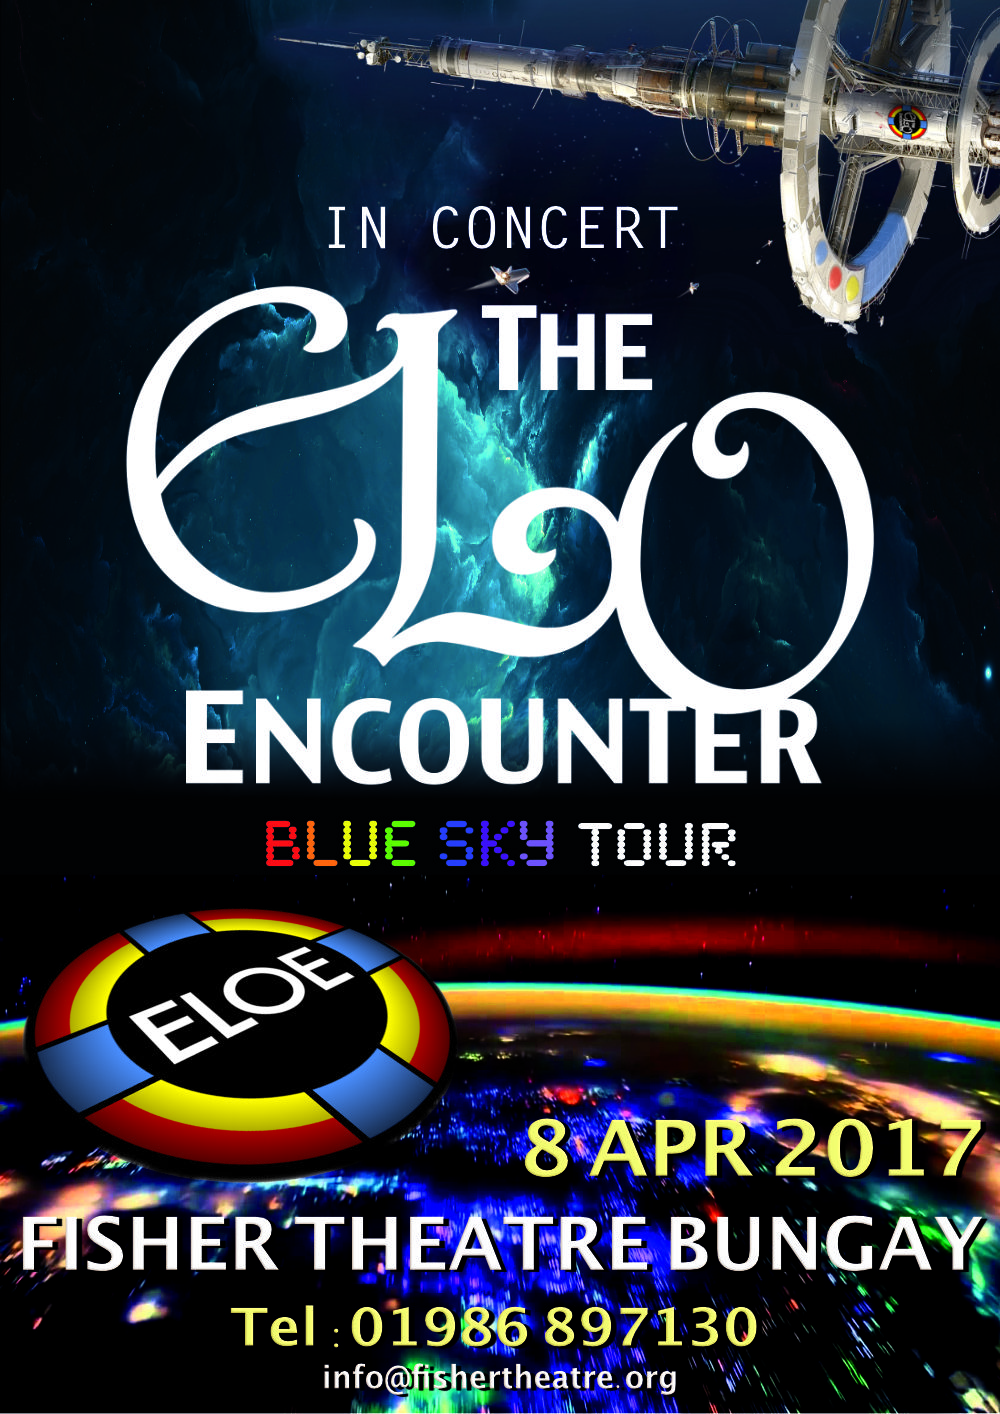 Fisher Theatre Bungay - ELO Encounter Poster